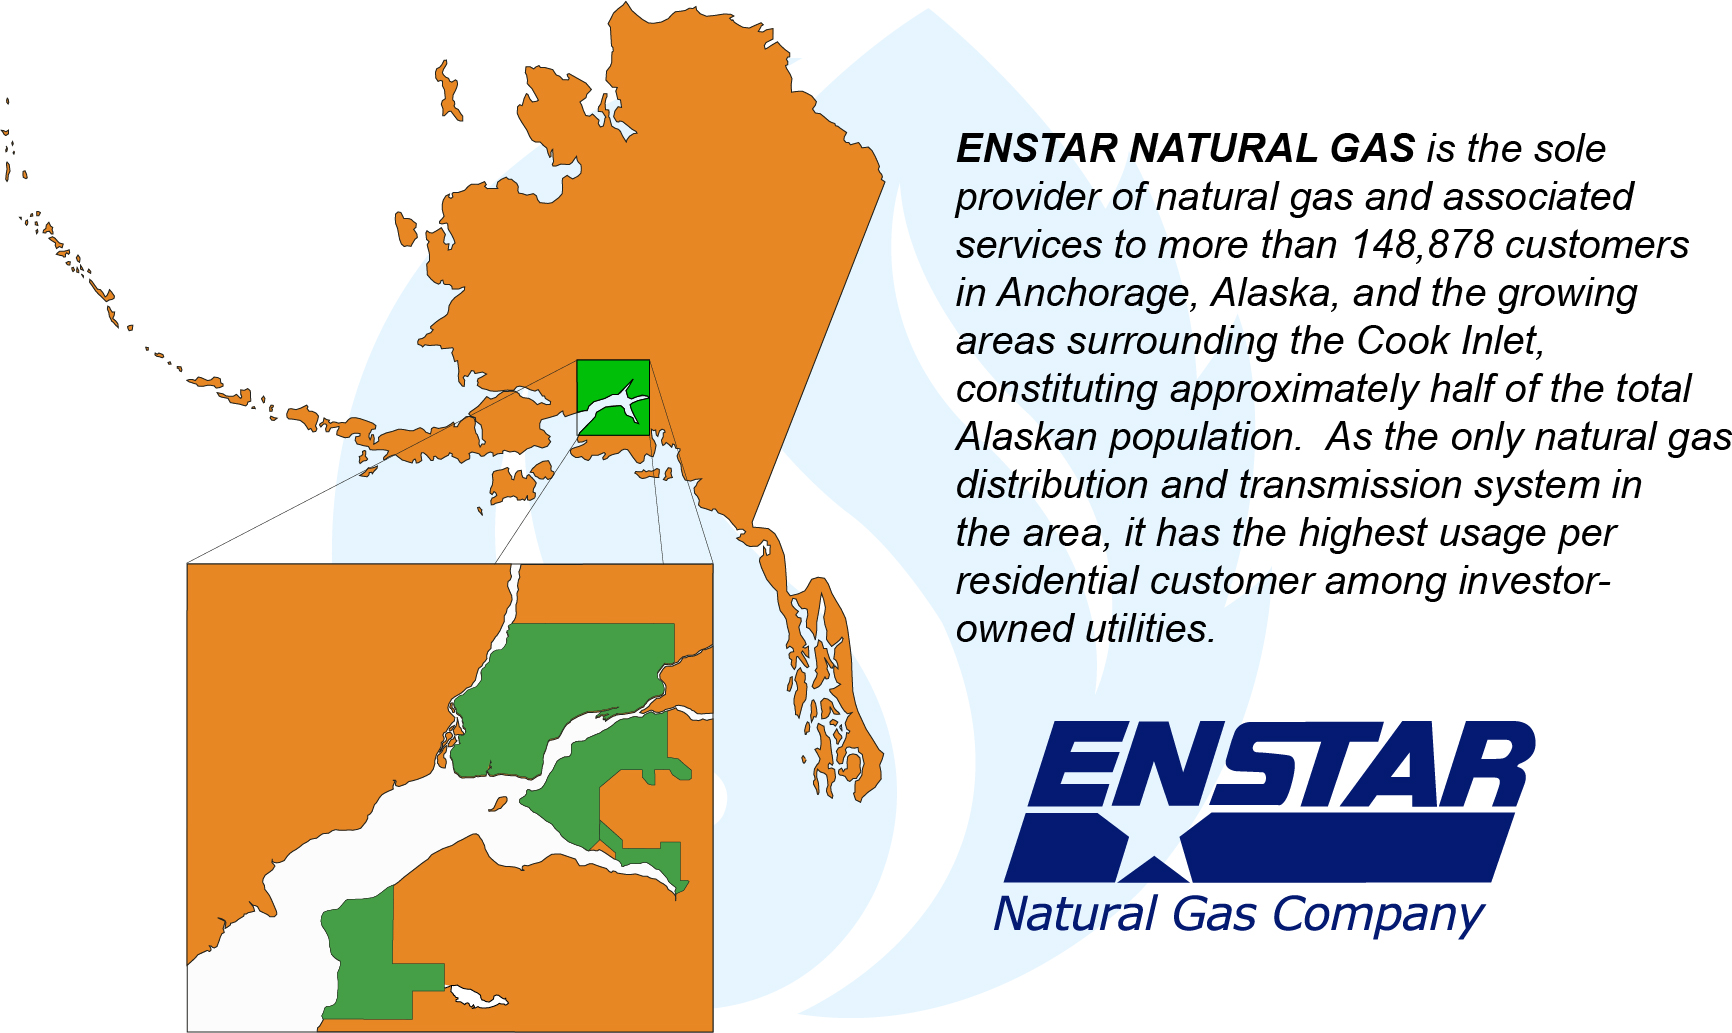 ENSTAR NATURAL GAS is the sole provider of natural gas and associated services to more than 148,878 customers in Anchorage, Alaska, and the growing areas surrounding the Cook Inlet, constituting approximately half of the total Alaskan population. As the only natural gas distribution and transmission system in the area, it has the highest usage per residential customer among investor- owned utilities.